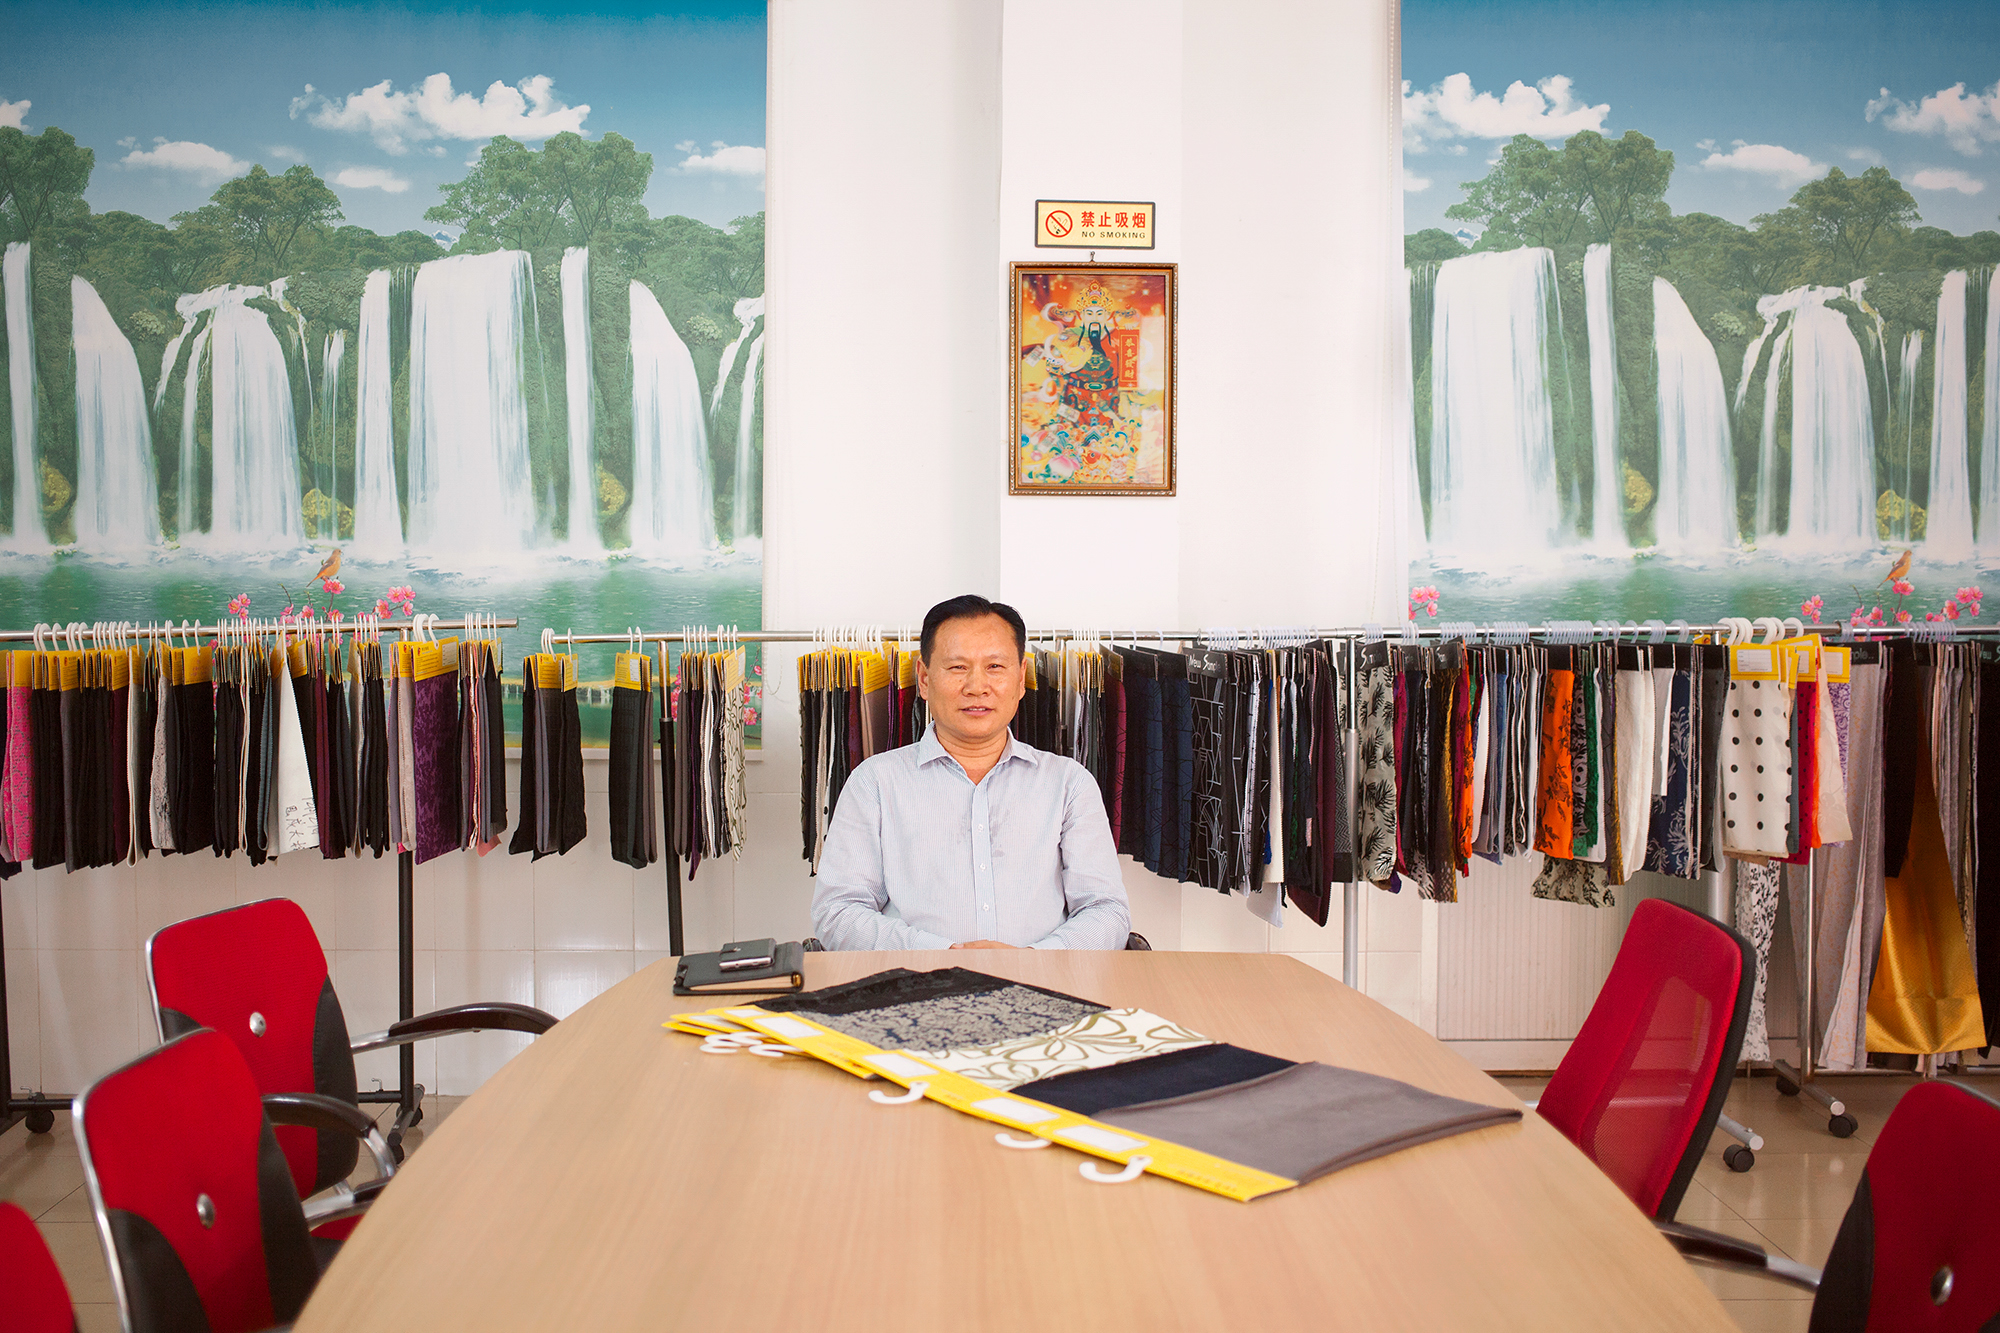 The director of a textile factory that produces custom-made fabrics for brands including Zara and Victoria's Secret, at the factory showroom, Humen town, Dongguan city, Guangdong province, China, 2016.